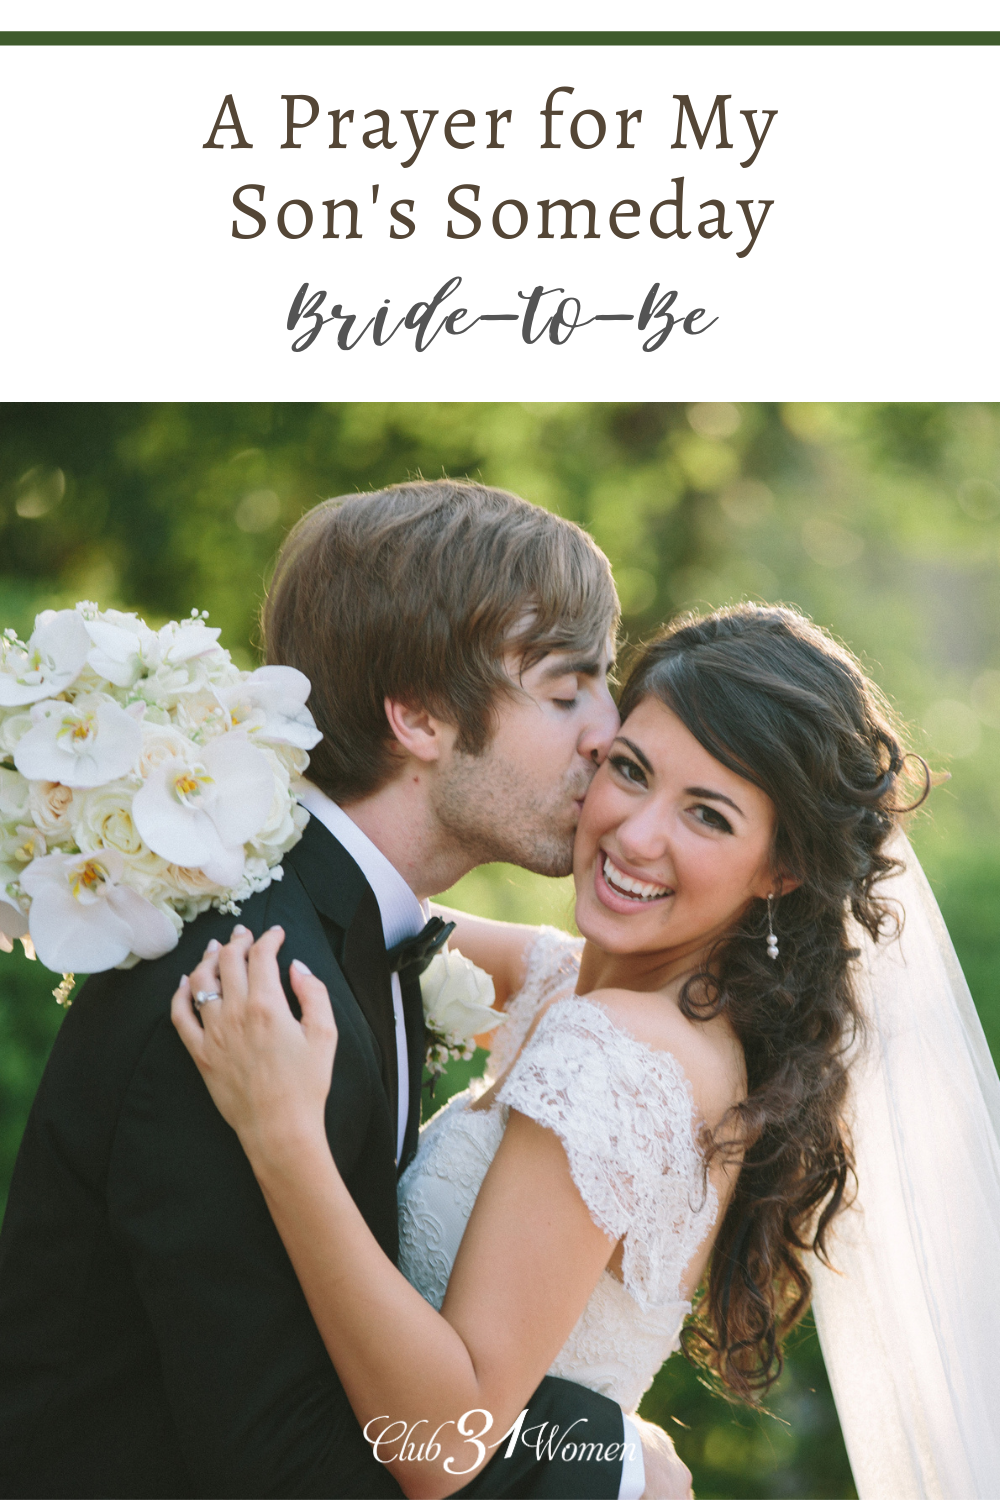 So beautiful!! With all that's going on in the world, here's a hope-filled prayer for the bride-to-be.... ~ Club31Women via @Club31Women